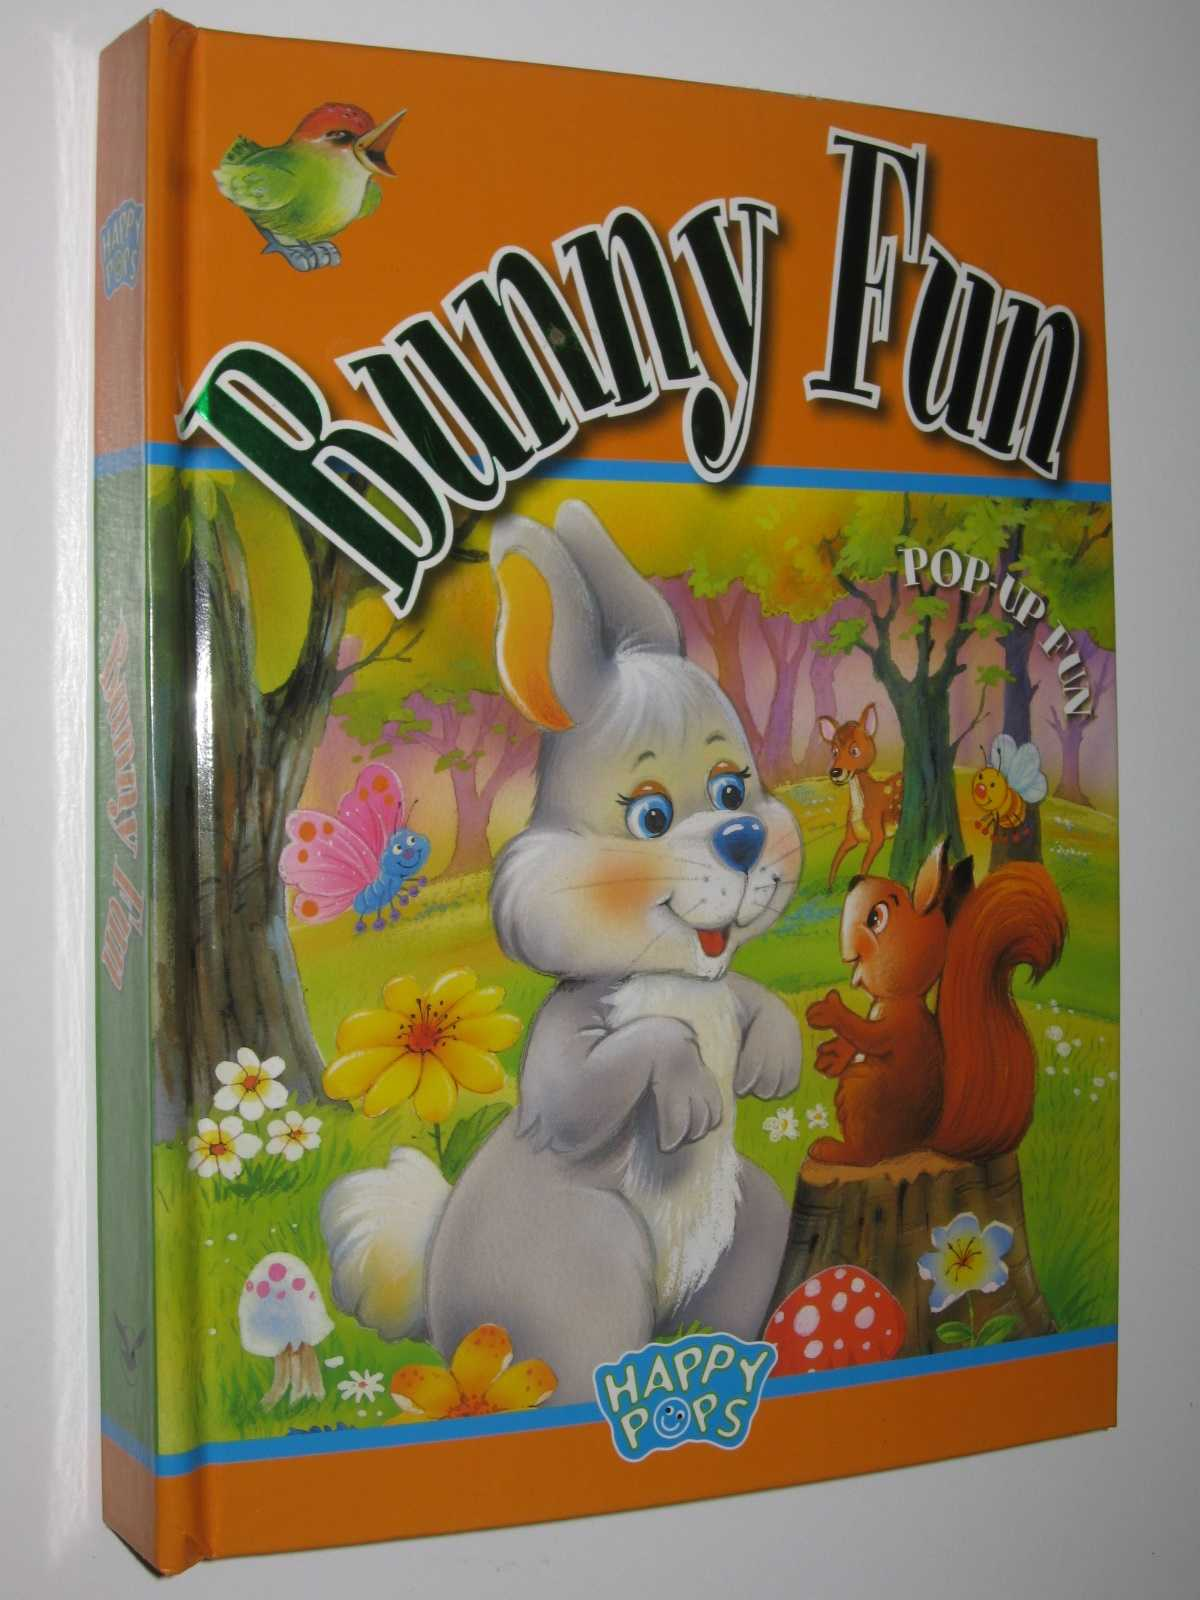 Image for Bunny Fun - Happy Pops Pop-up Book Series